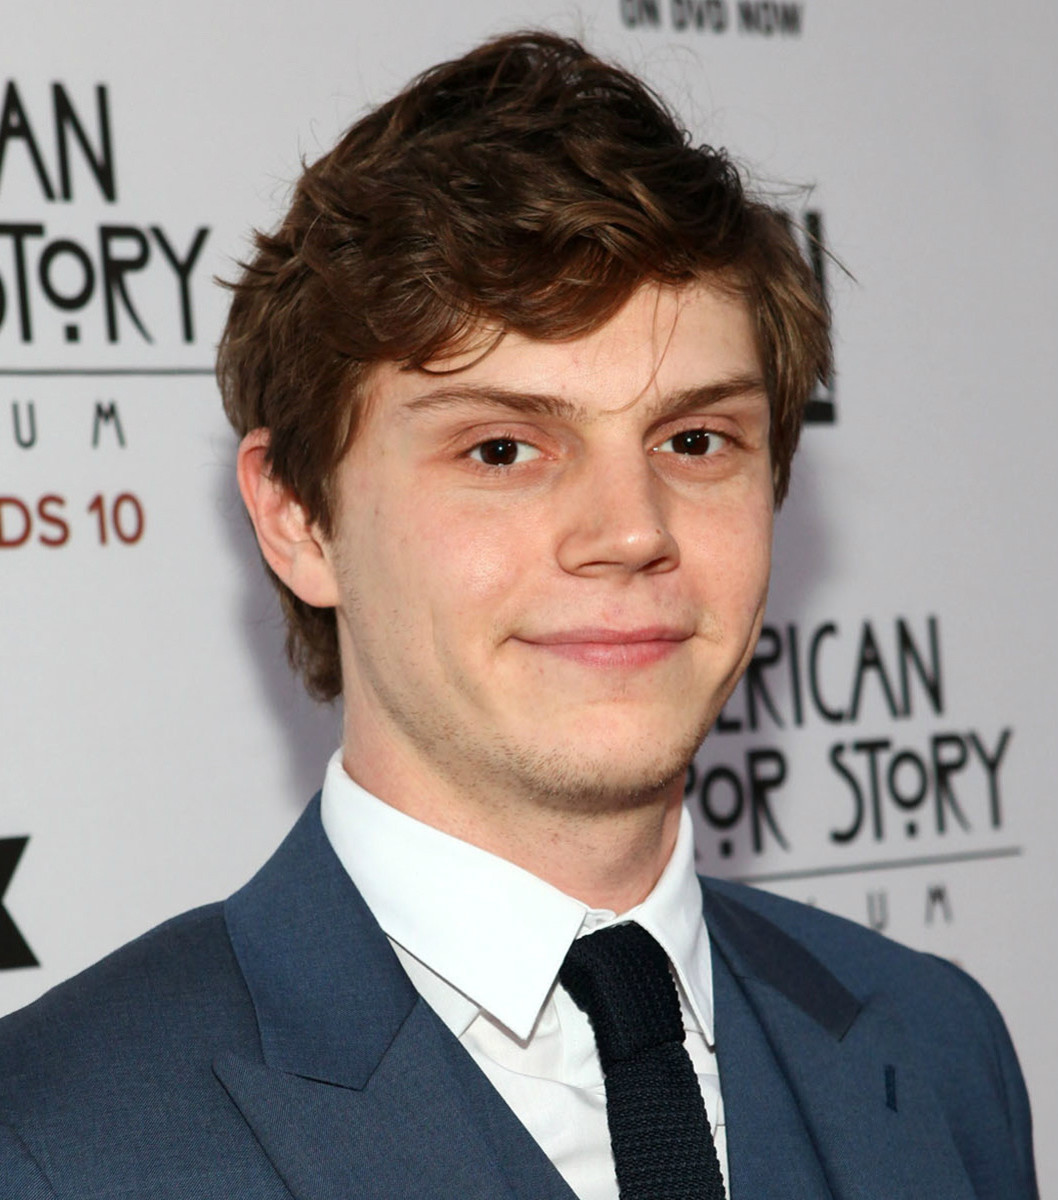 Evan Peters: The Heart of American Horror Story